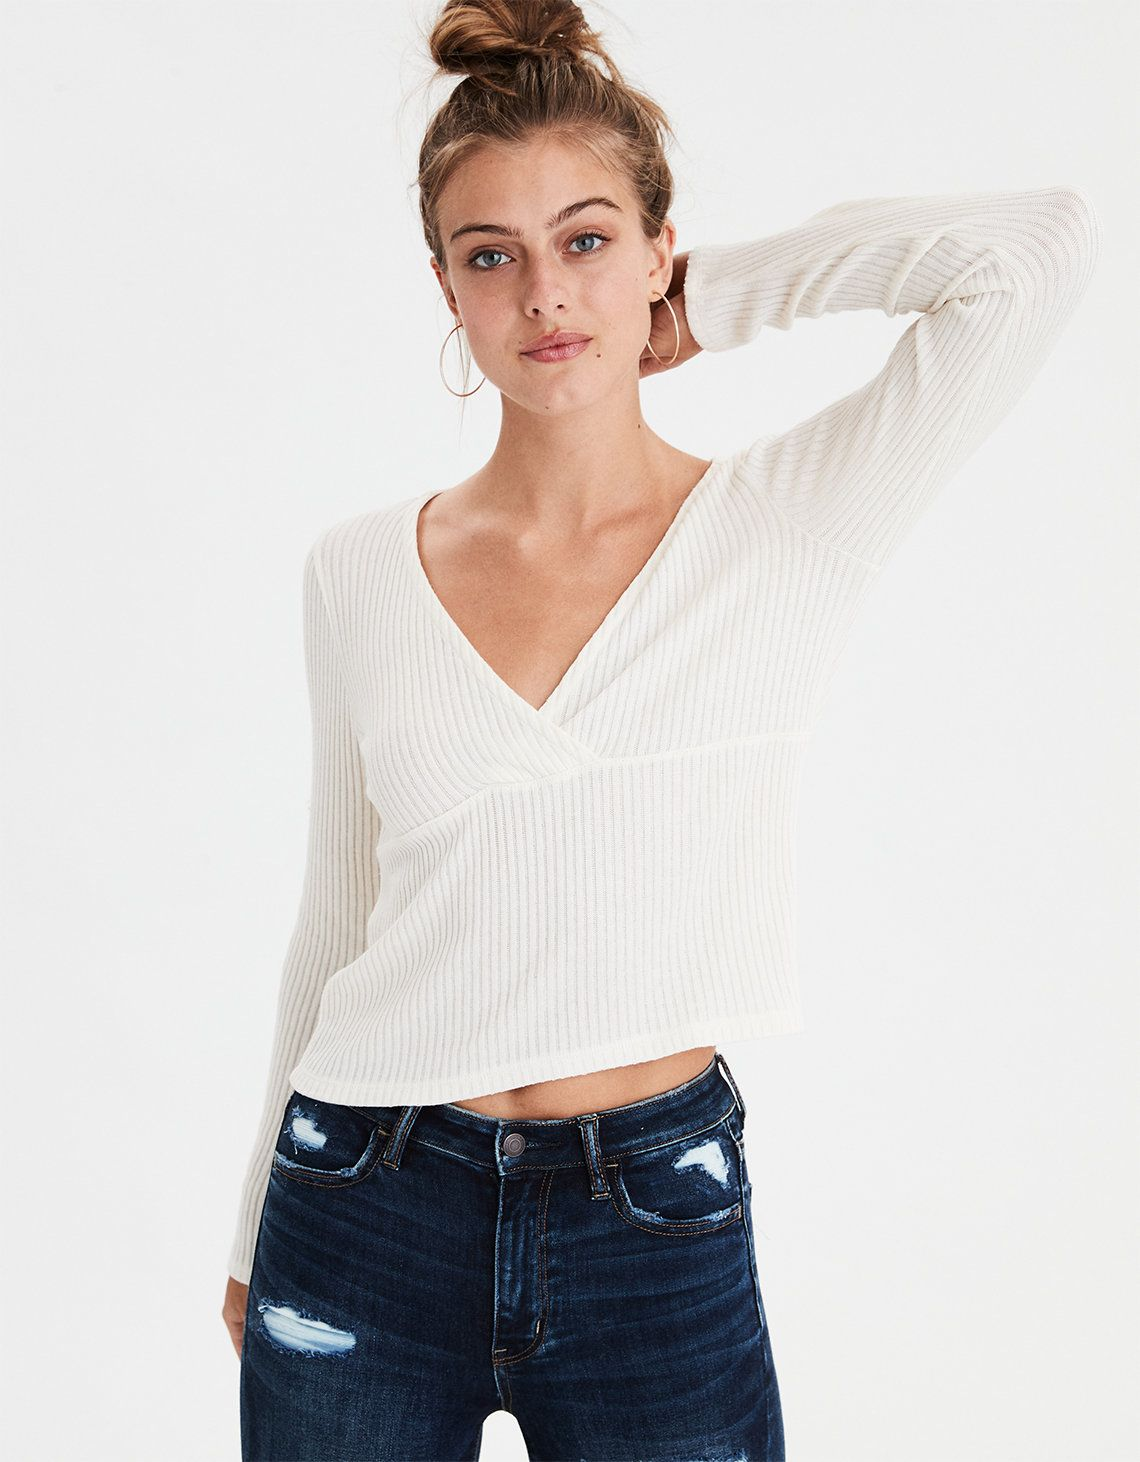 764d2a9575db4 Or just a long sleeve white shirt for layering